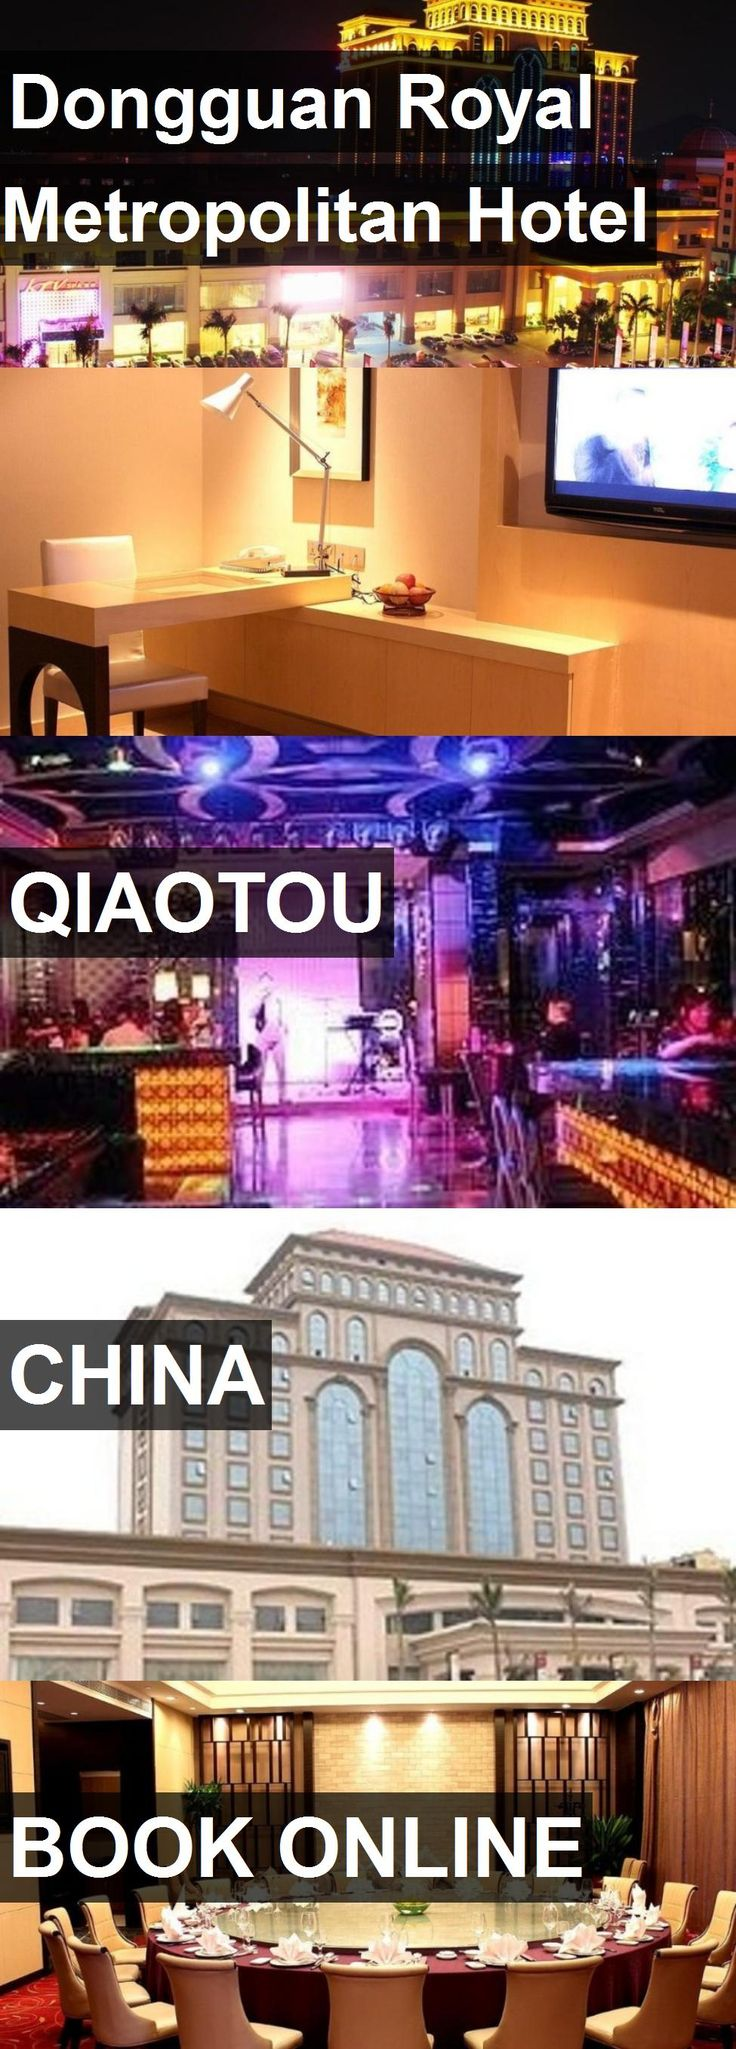 Hotel Dongguan Royal Metropolitan Hotel in Qiaotou, China. For more information, photos, reviews and best prices please follow the link. #China #Qiaotou #DongguanRoyalMetropolitanHotel #hotel #travel #vacation